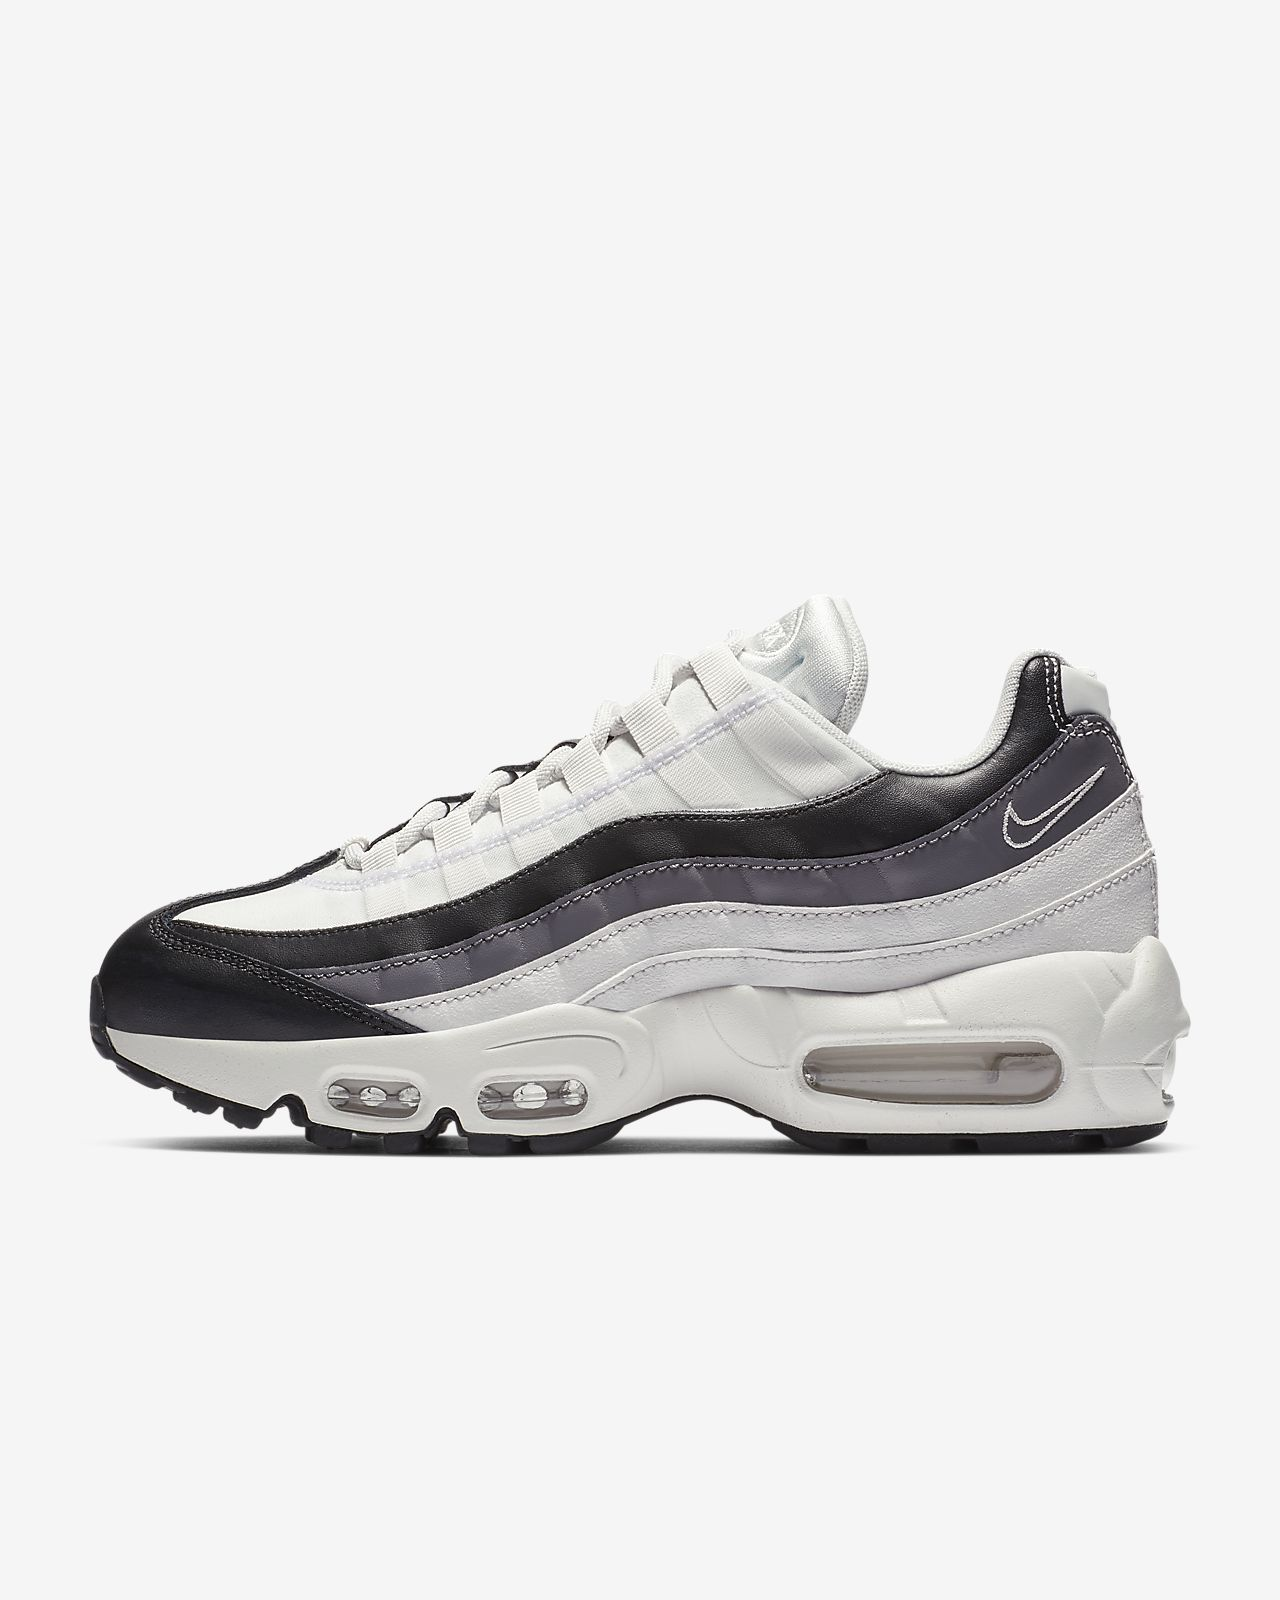 promo code f6a60 bd400 Womens Shoe. Nike Air Max 95